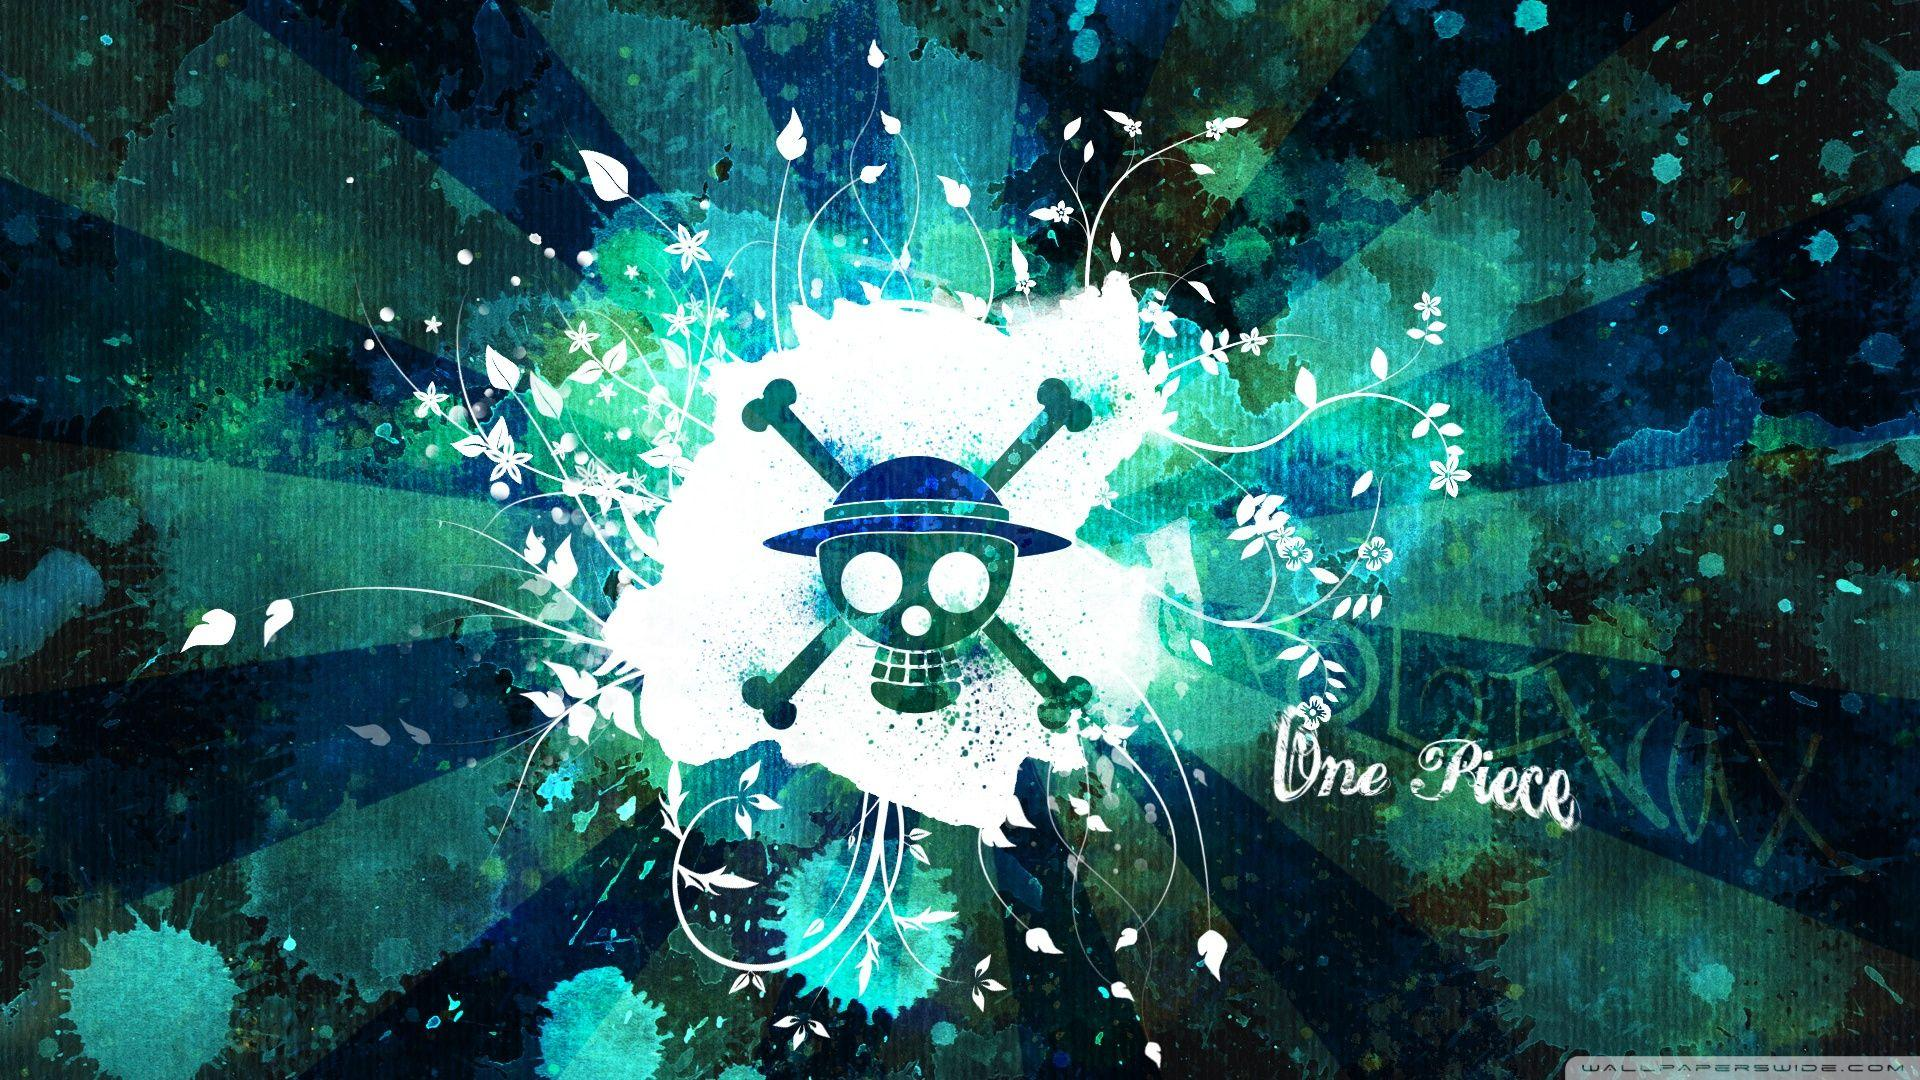 One Piece Wallpapers HD 1920x1080 - Wallpaper Cave